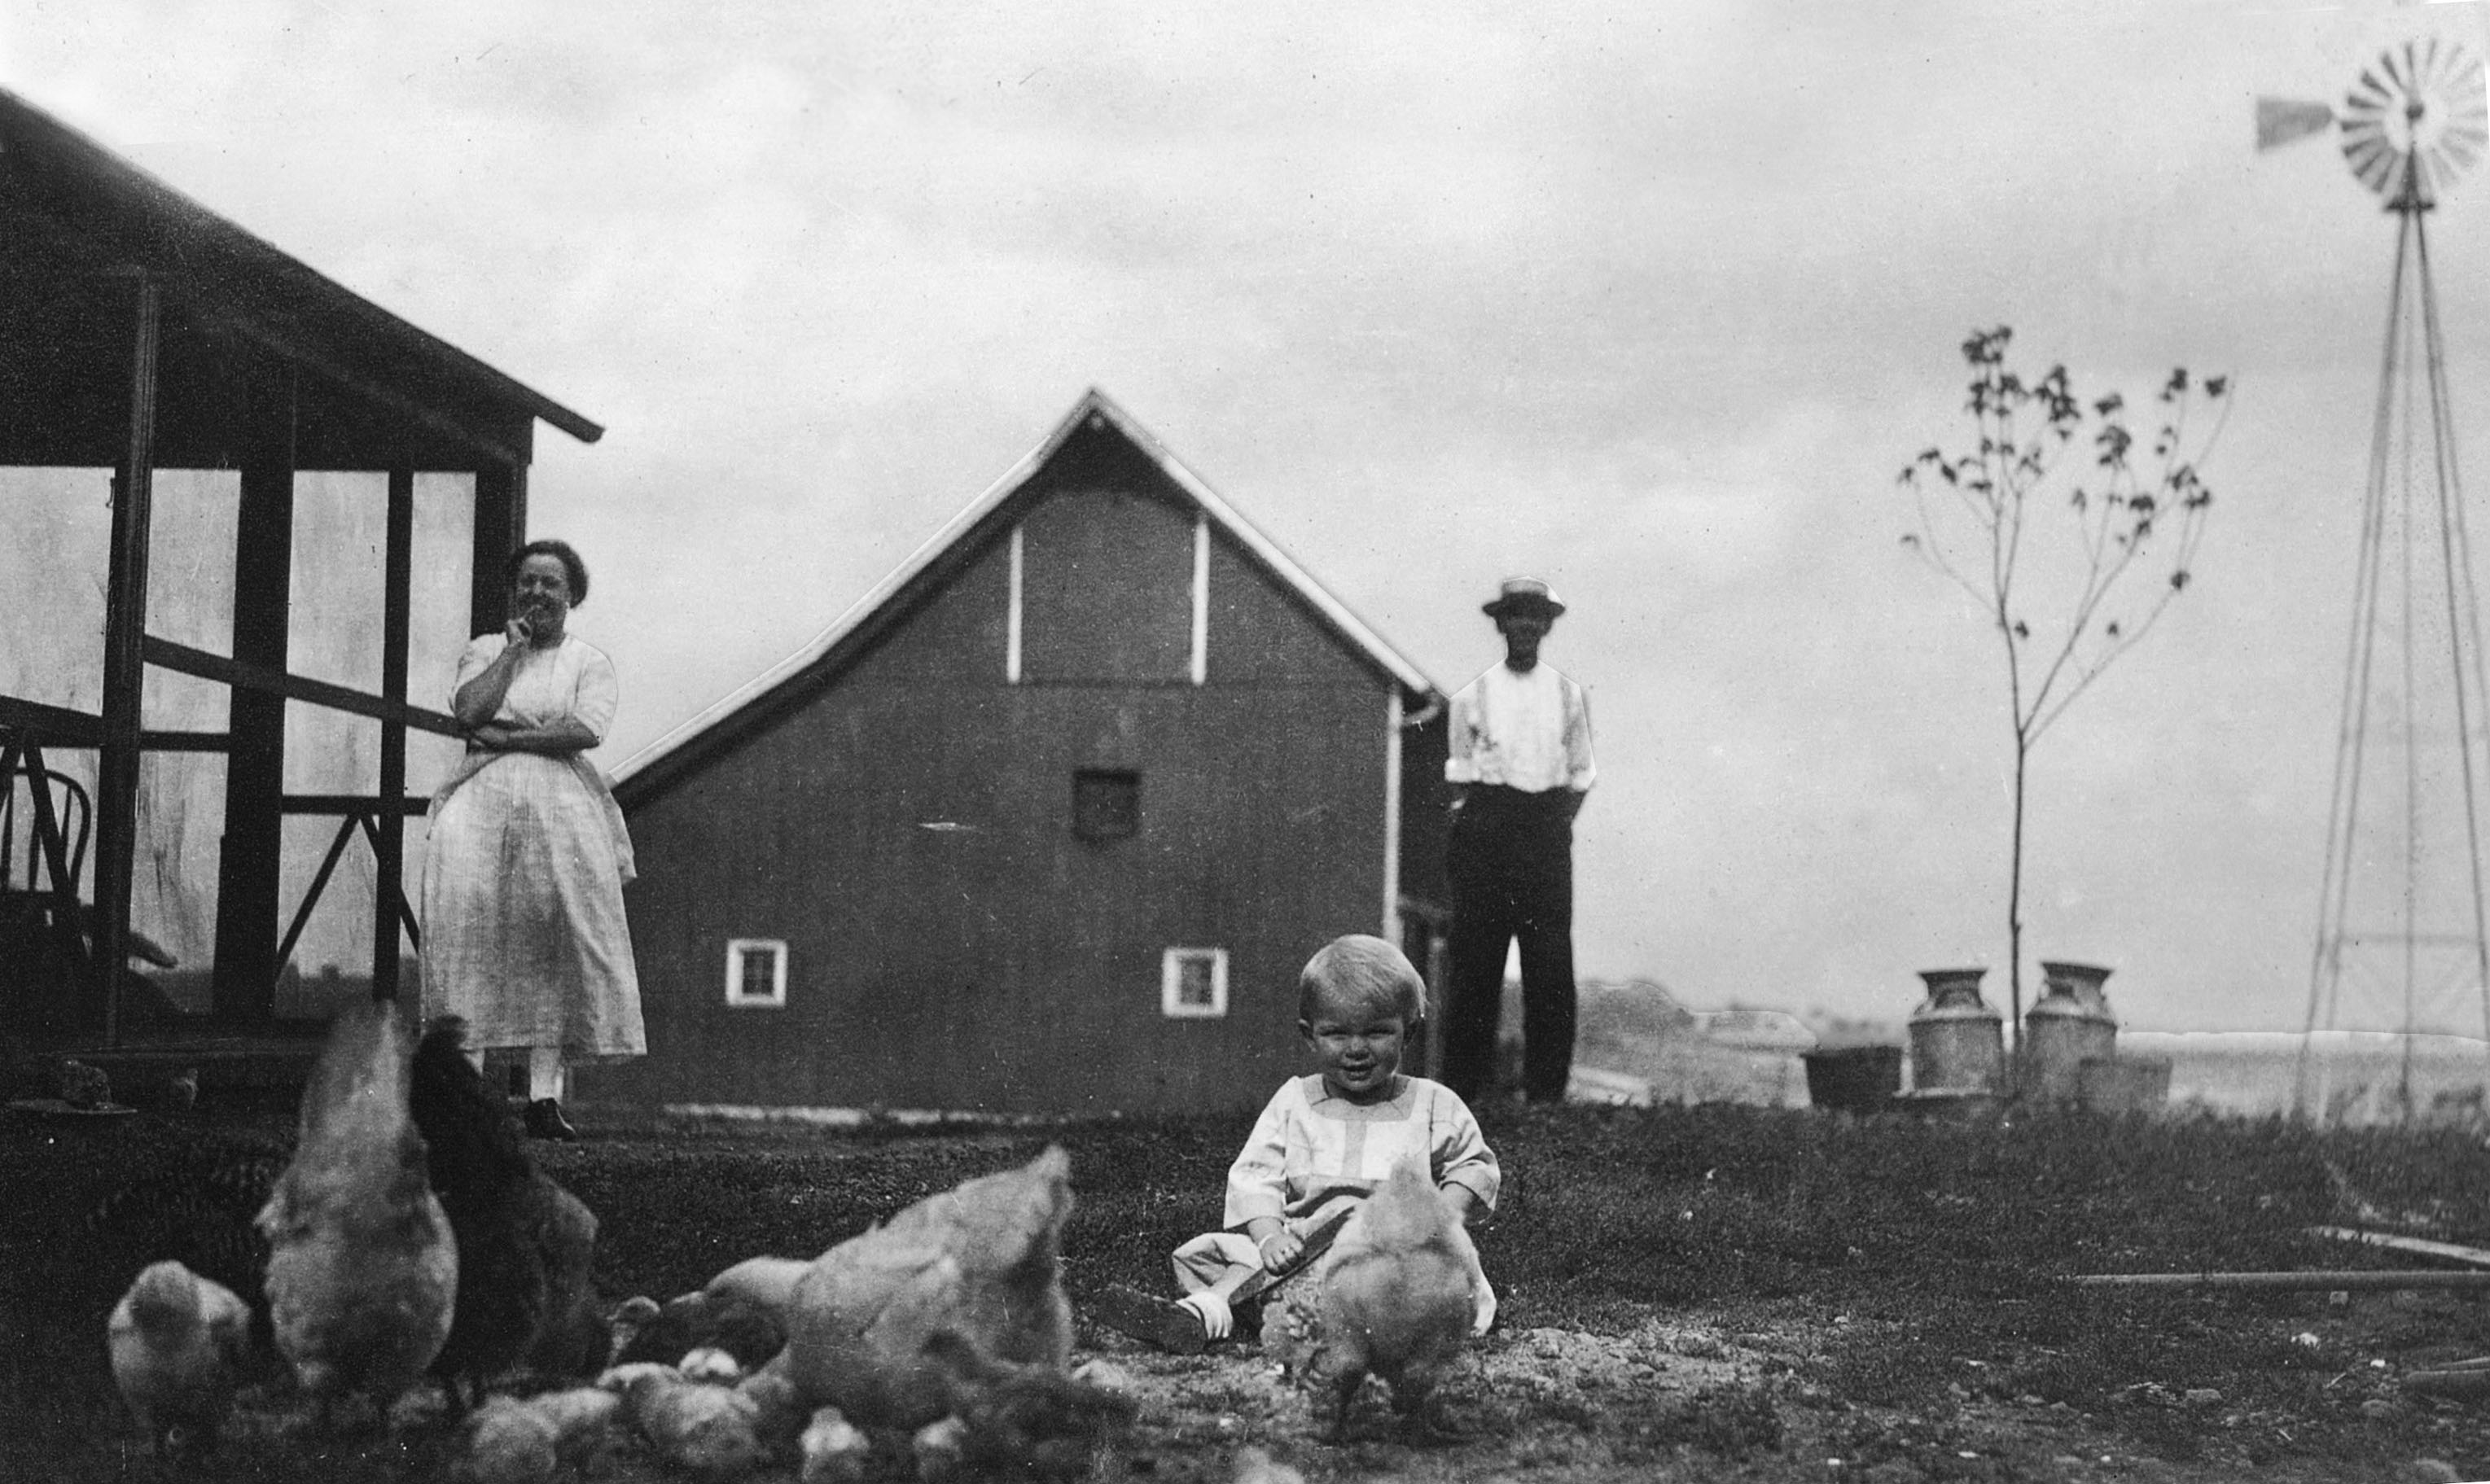 Spotlight: Honoring Historic Farmsteads